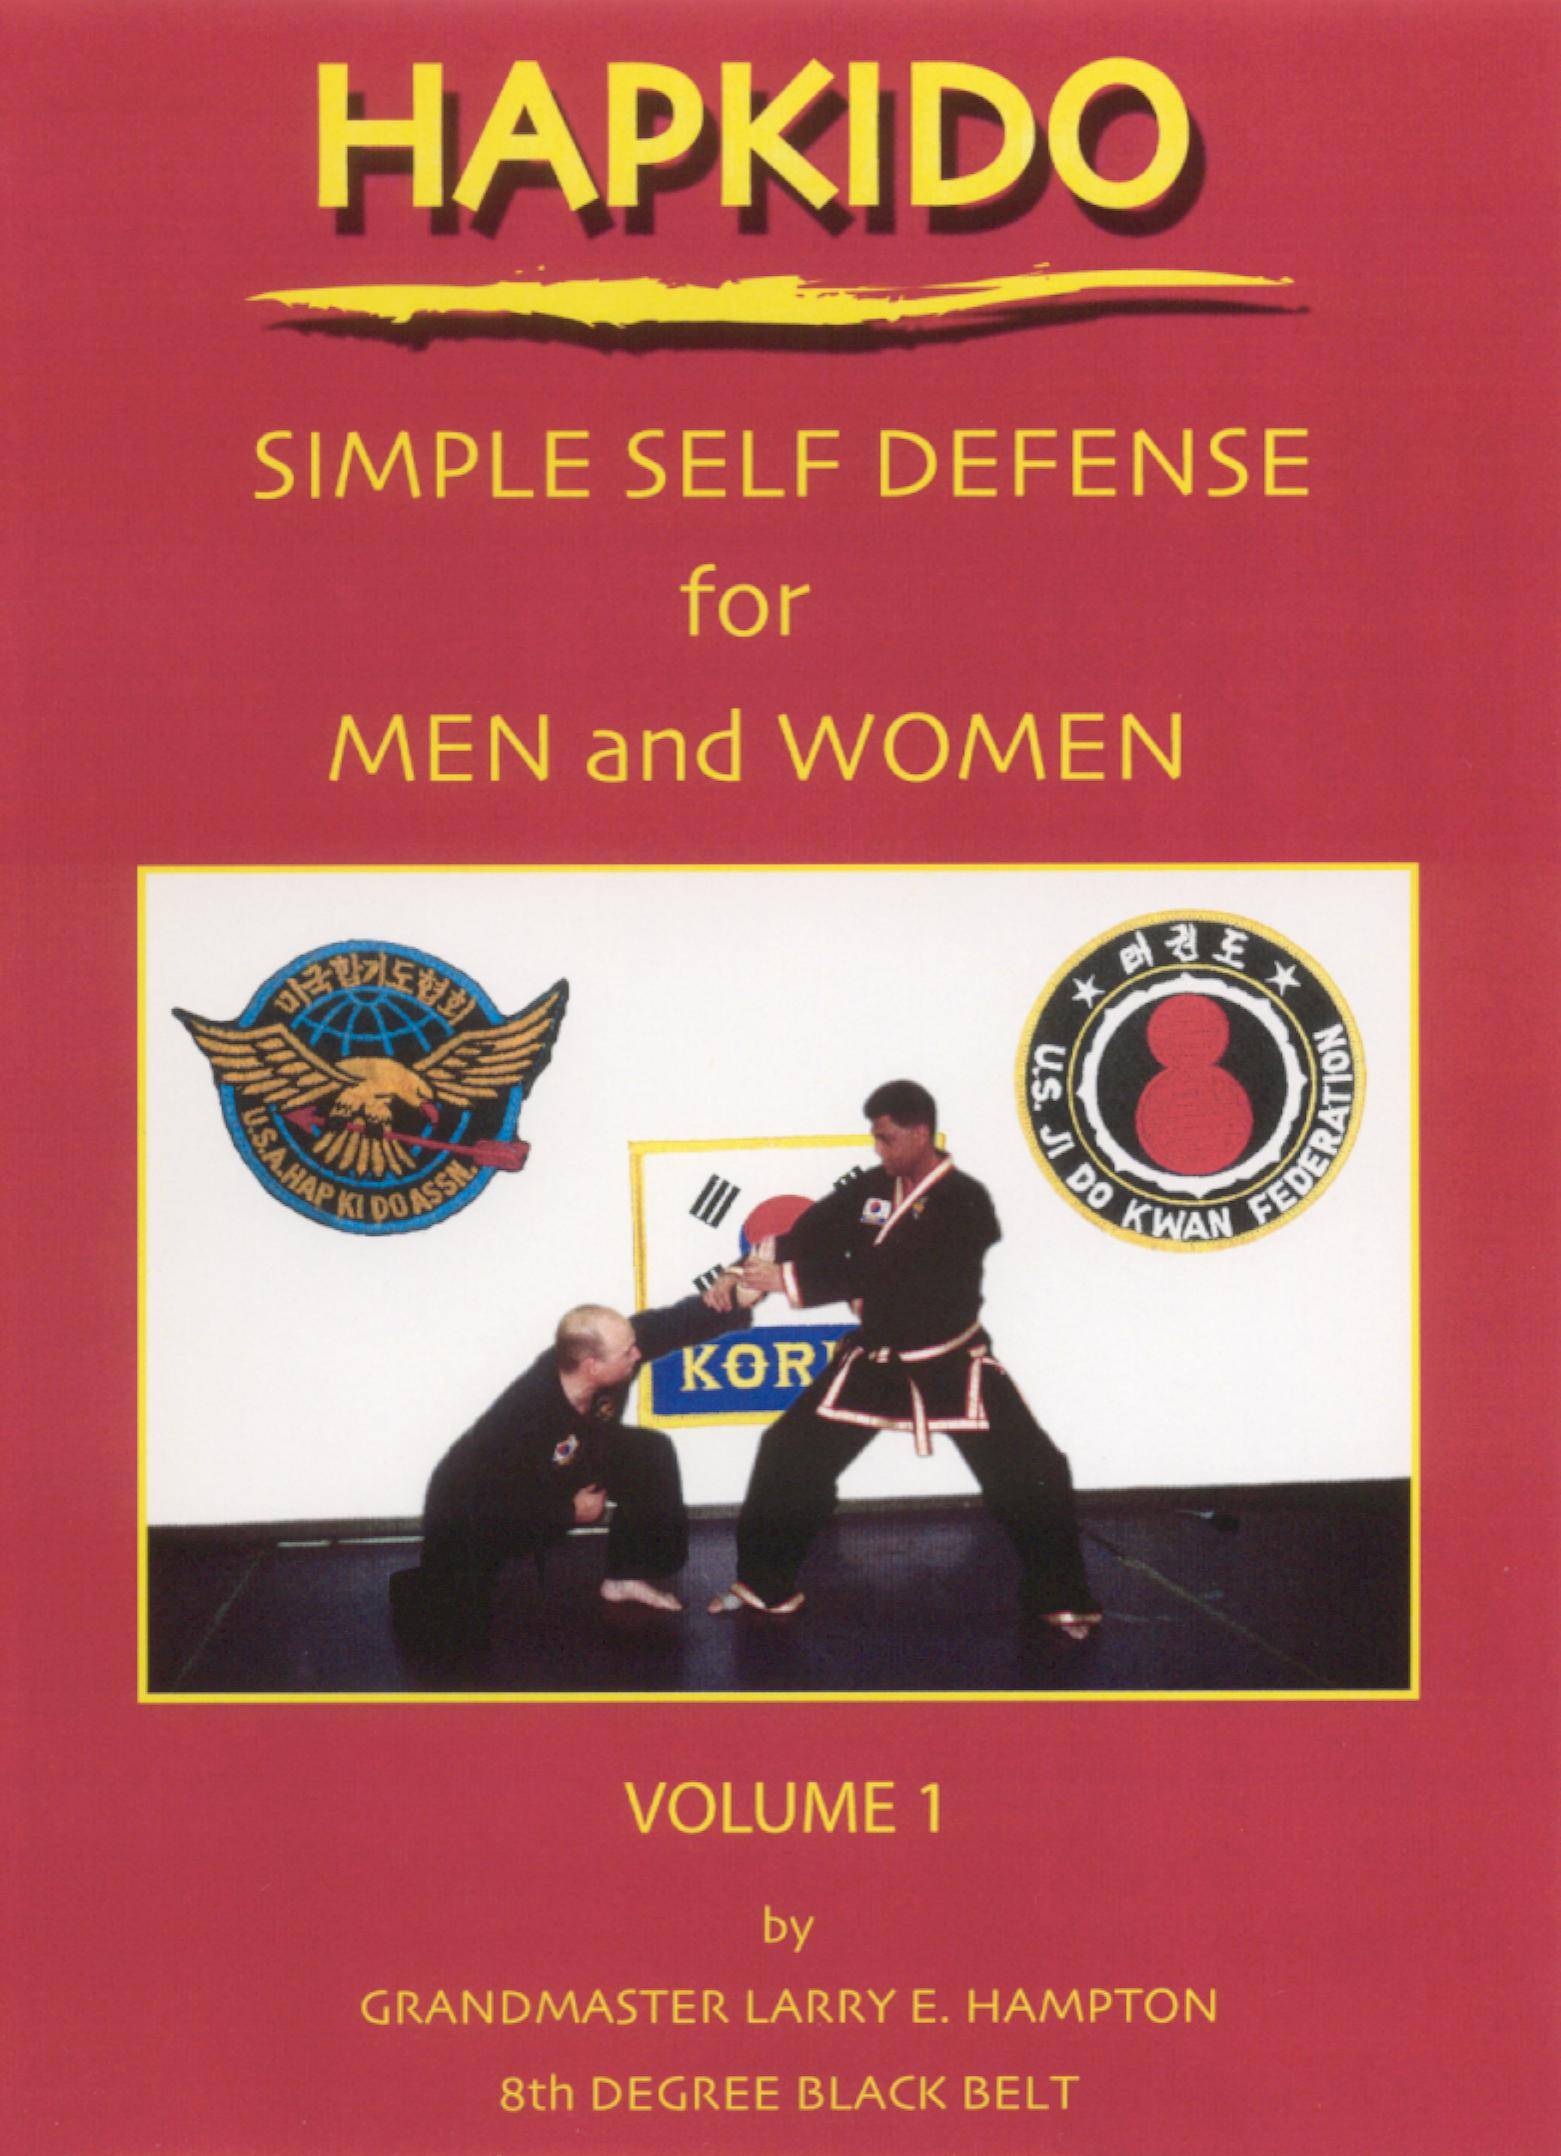 Hapkido: Simple Self-Defense For Men and Women, Vol. 1